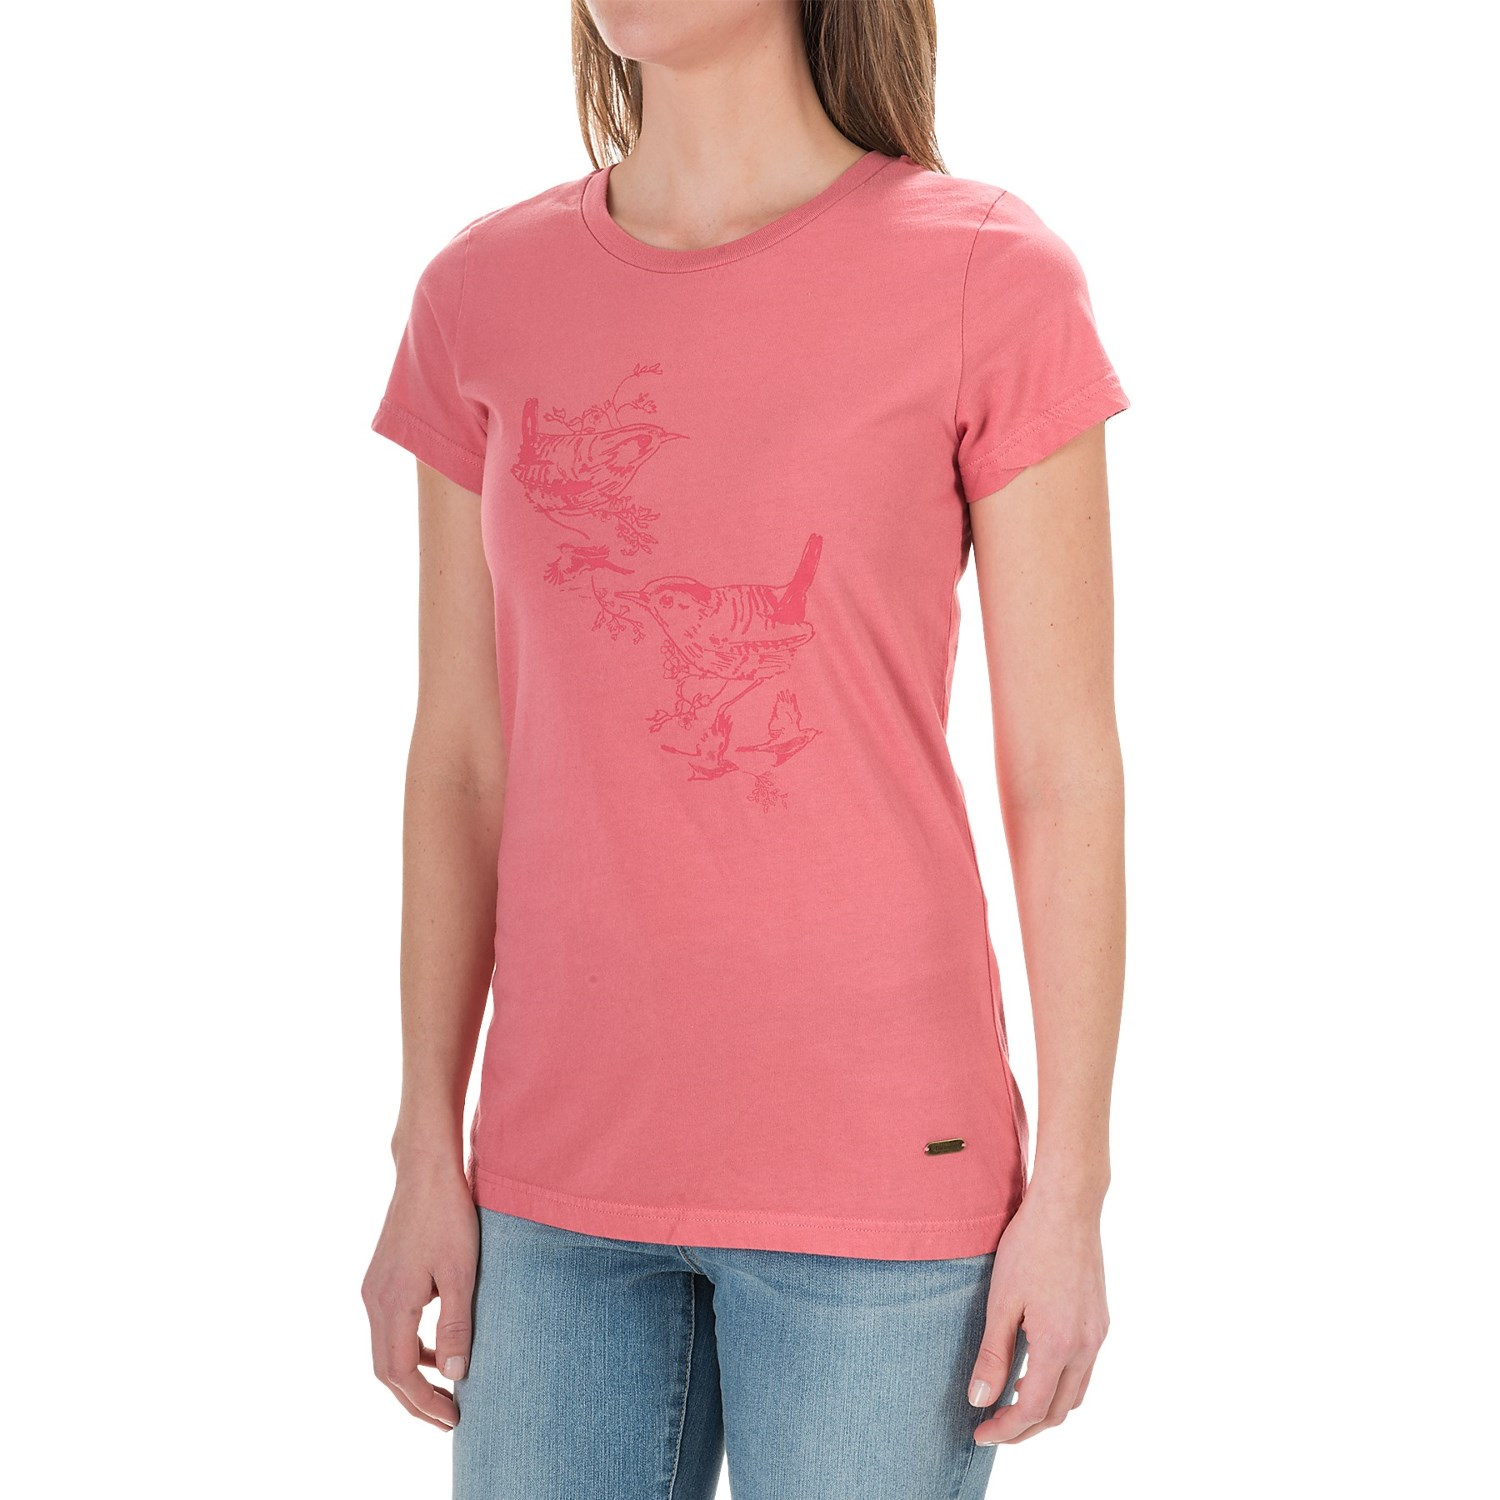 Barbour Printed Cotton Round Neck T Shirt For Women